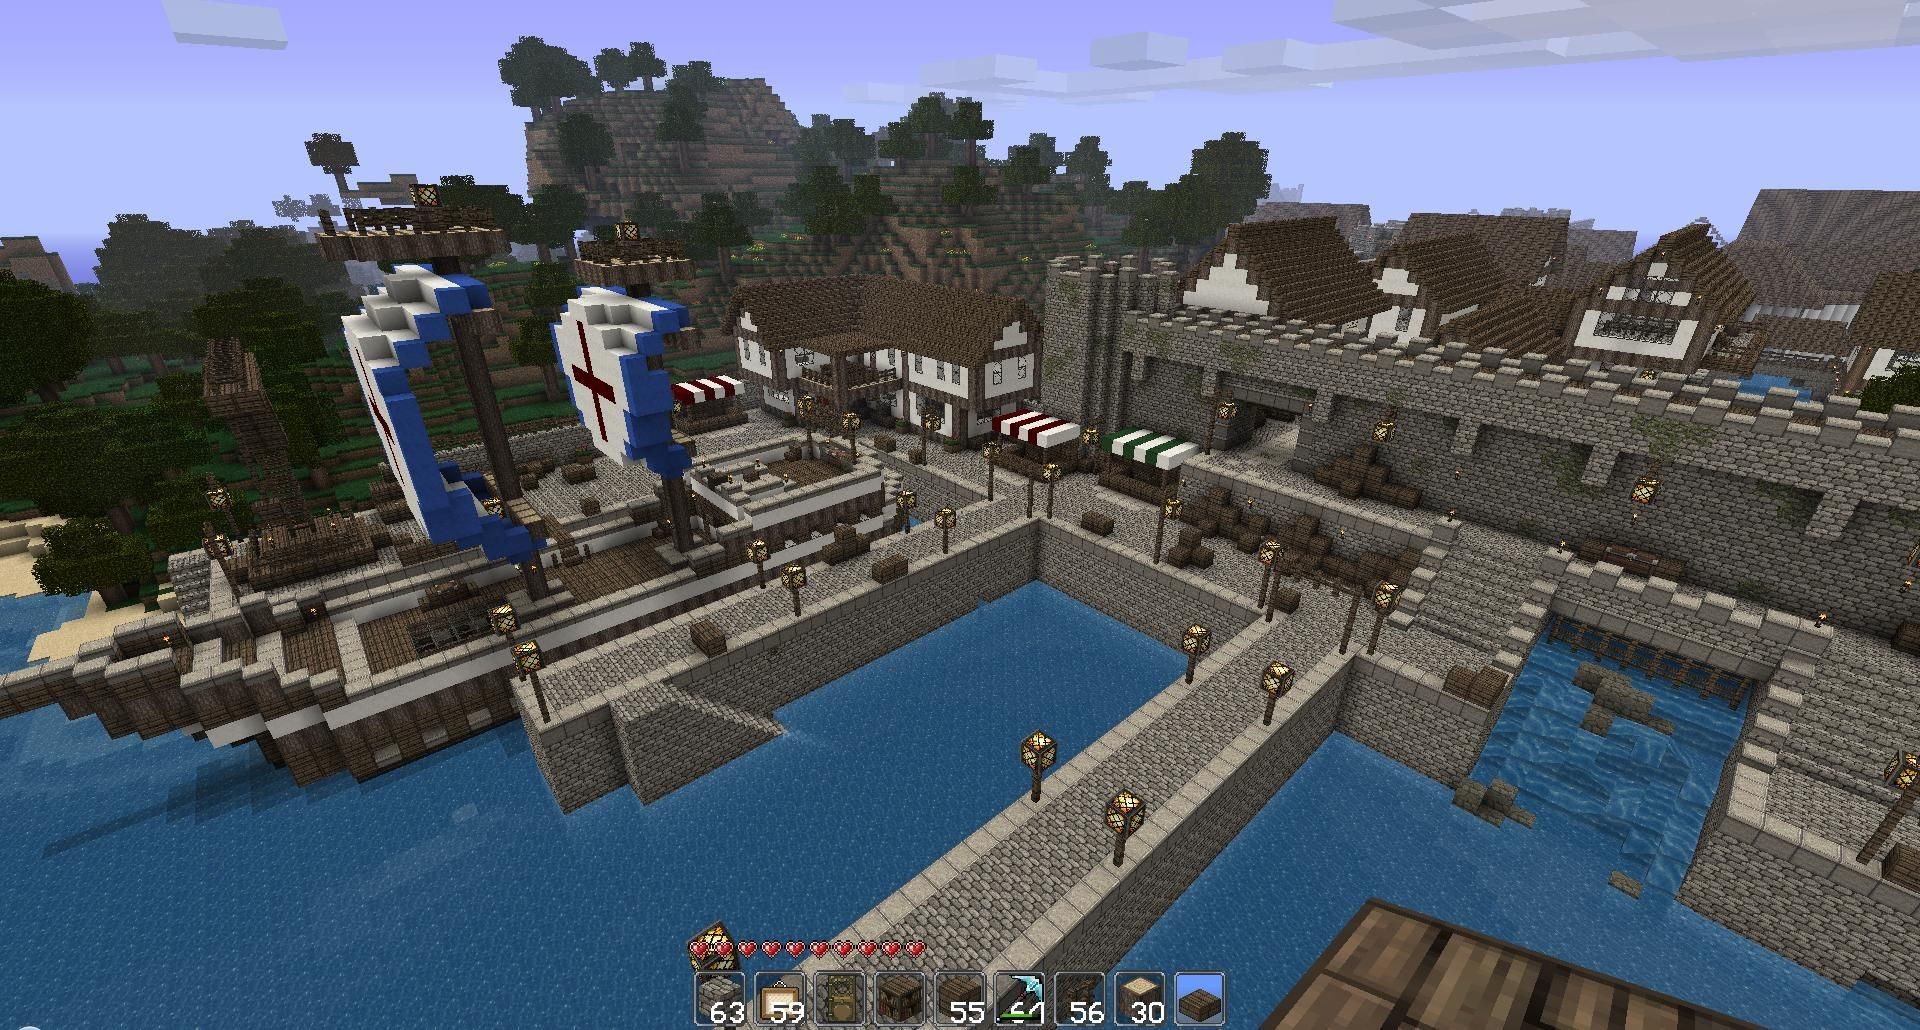 minecraft dock house - google search | minecraft building ideas